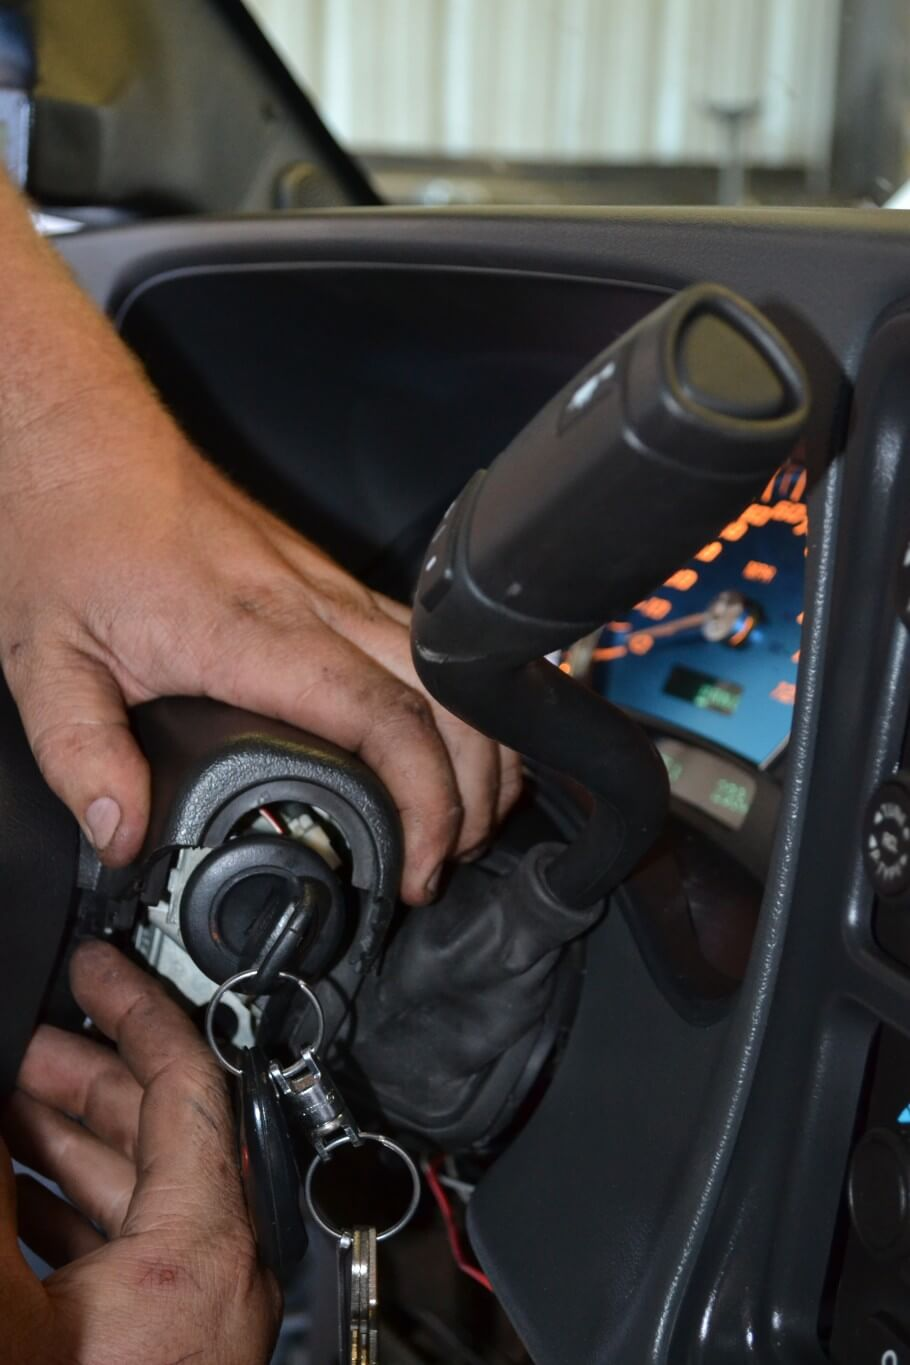 6. After the new shifter is installed, the steering column cover is snapped back into place. We were careful not to catch or pinch the rubber shifter boot on anything at this point in the install.